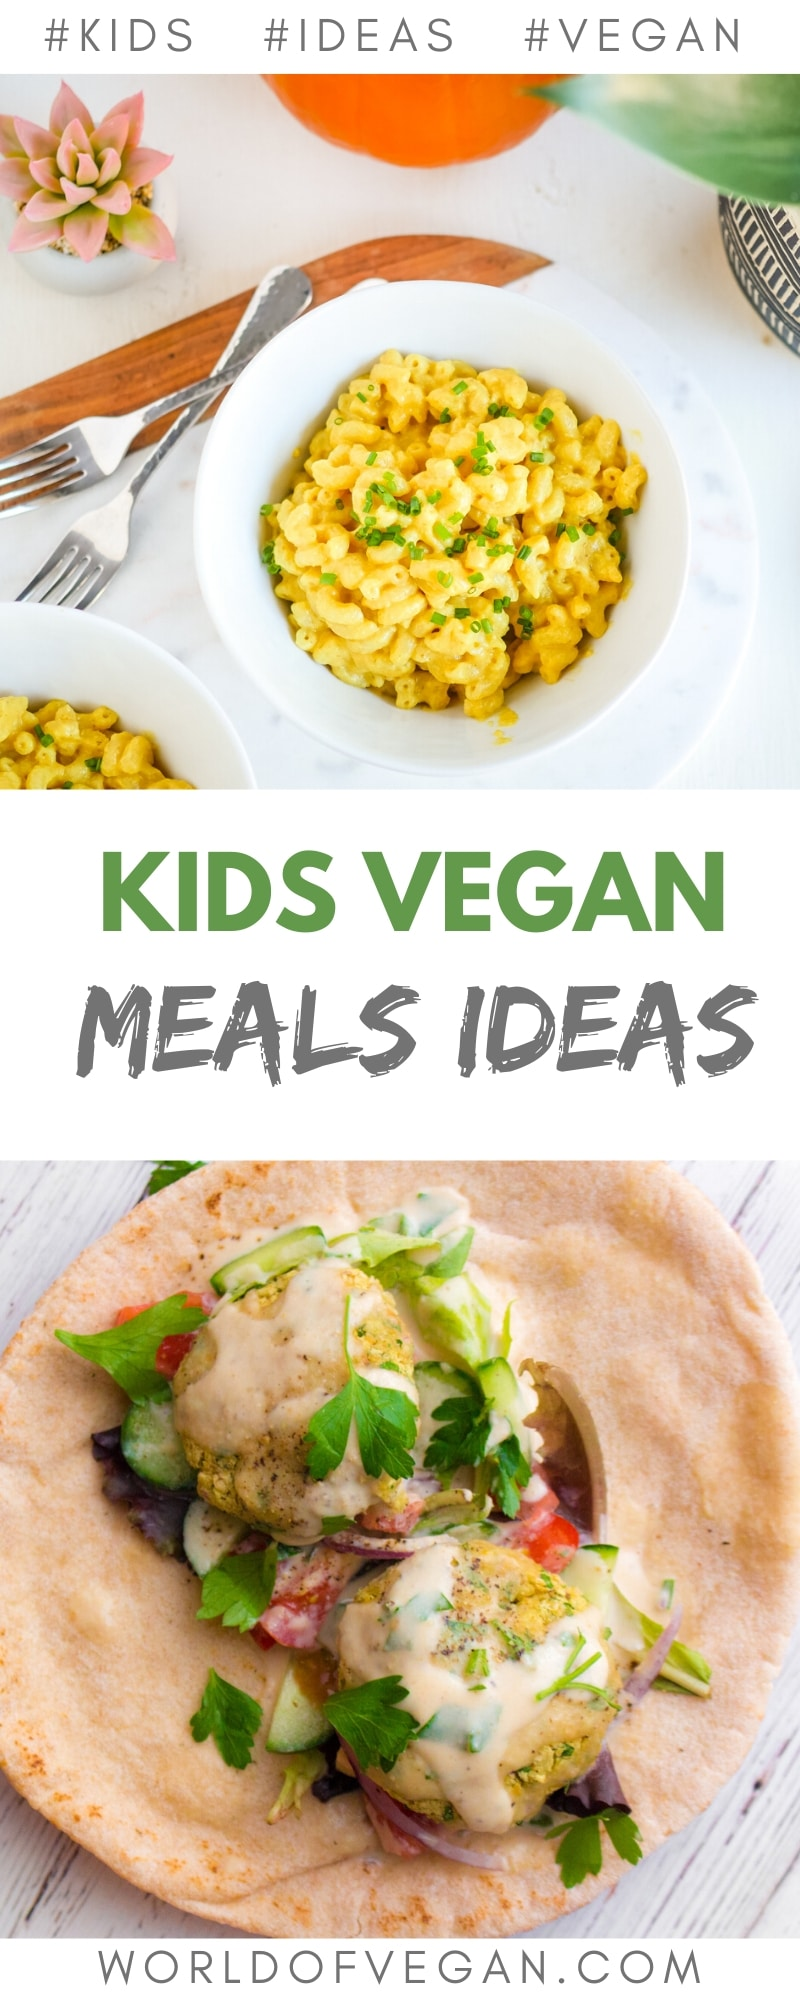 10 Vegan Meals Kids & Parents Will Love—Like Mac n Cheese! | World of Vegan | #kids #vegan #meals #recipe #ideas #easy #quick #macandcheese #wolrdofvegan